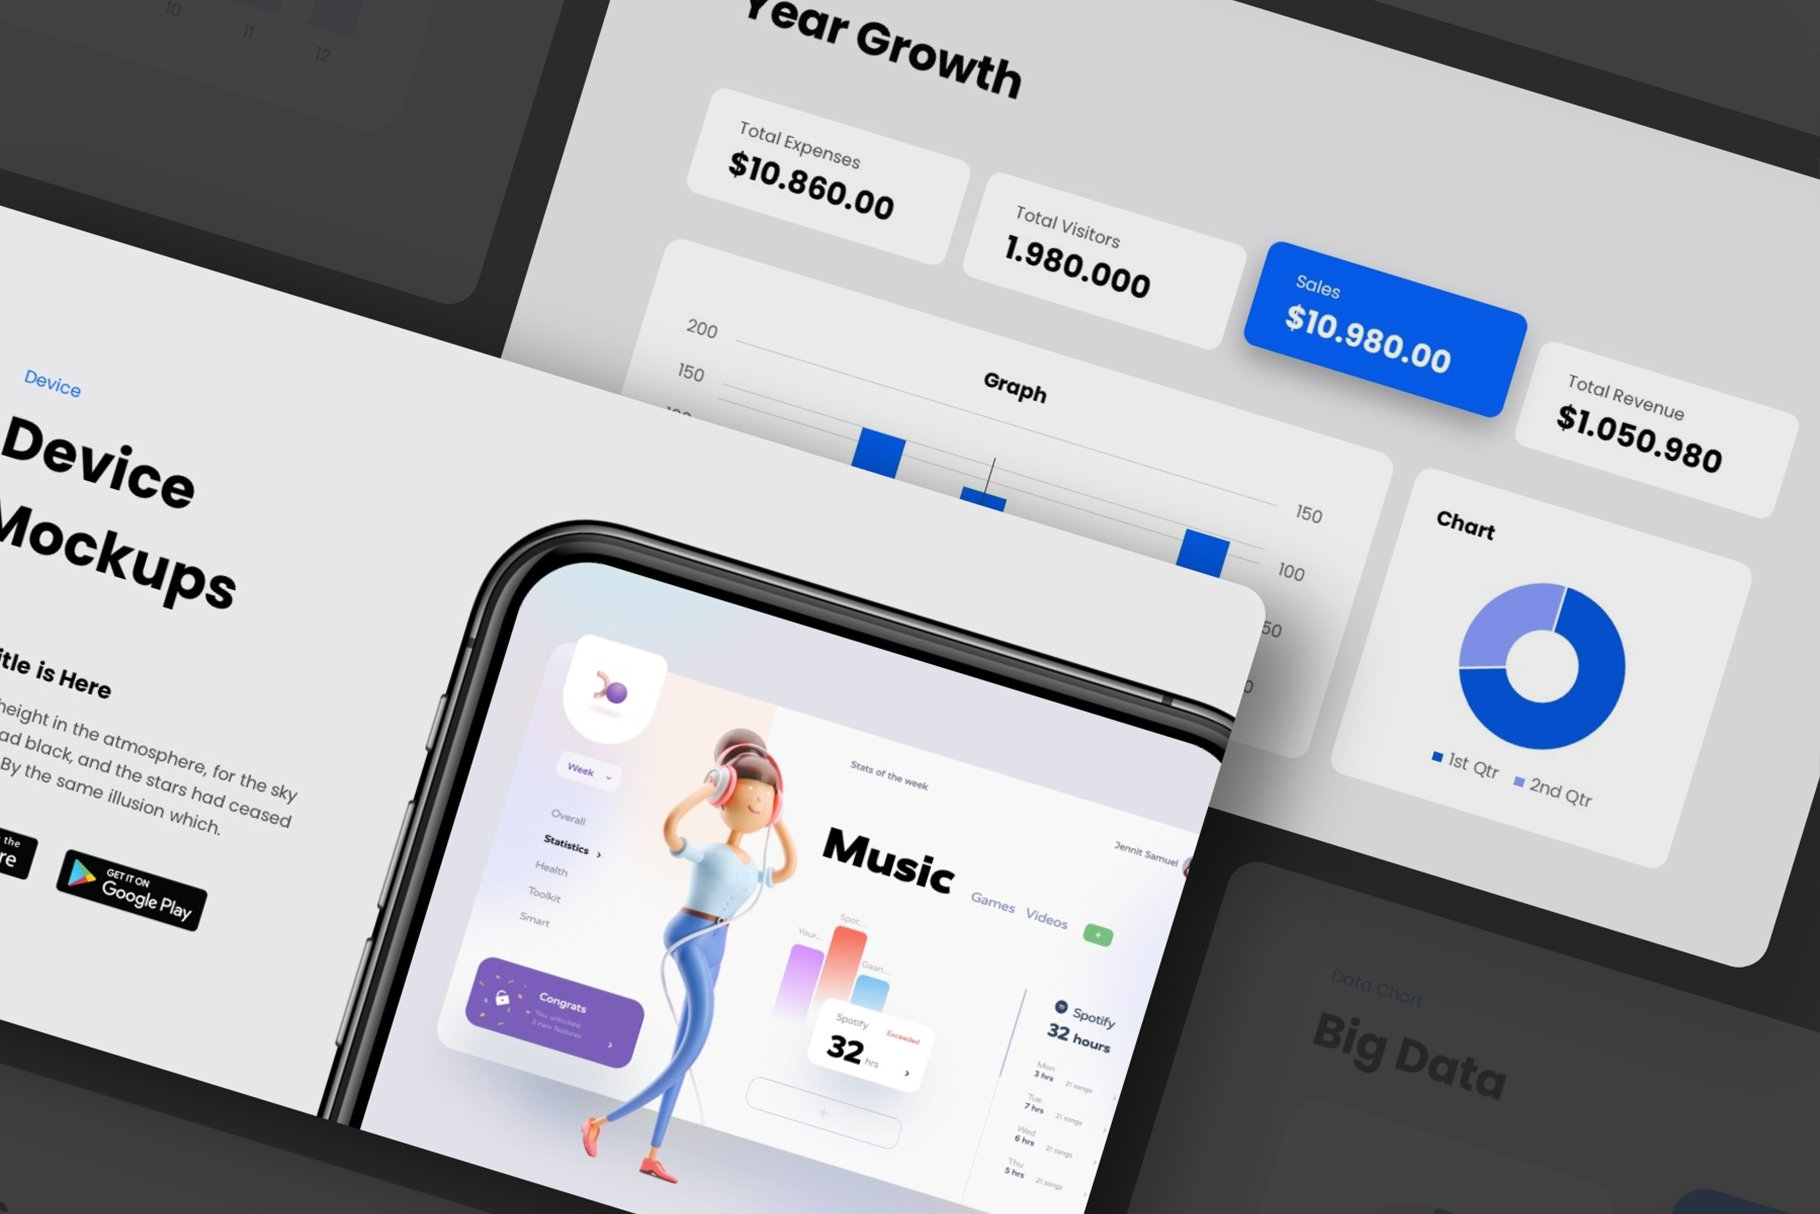 Template design is great for business and metrics showcasing.